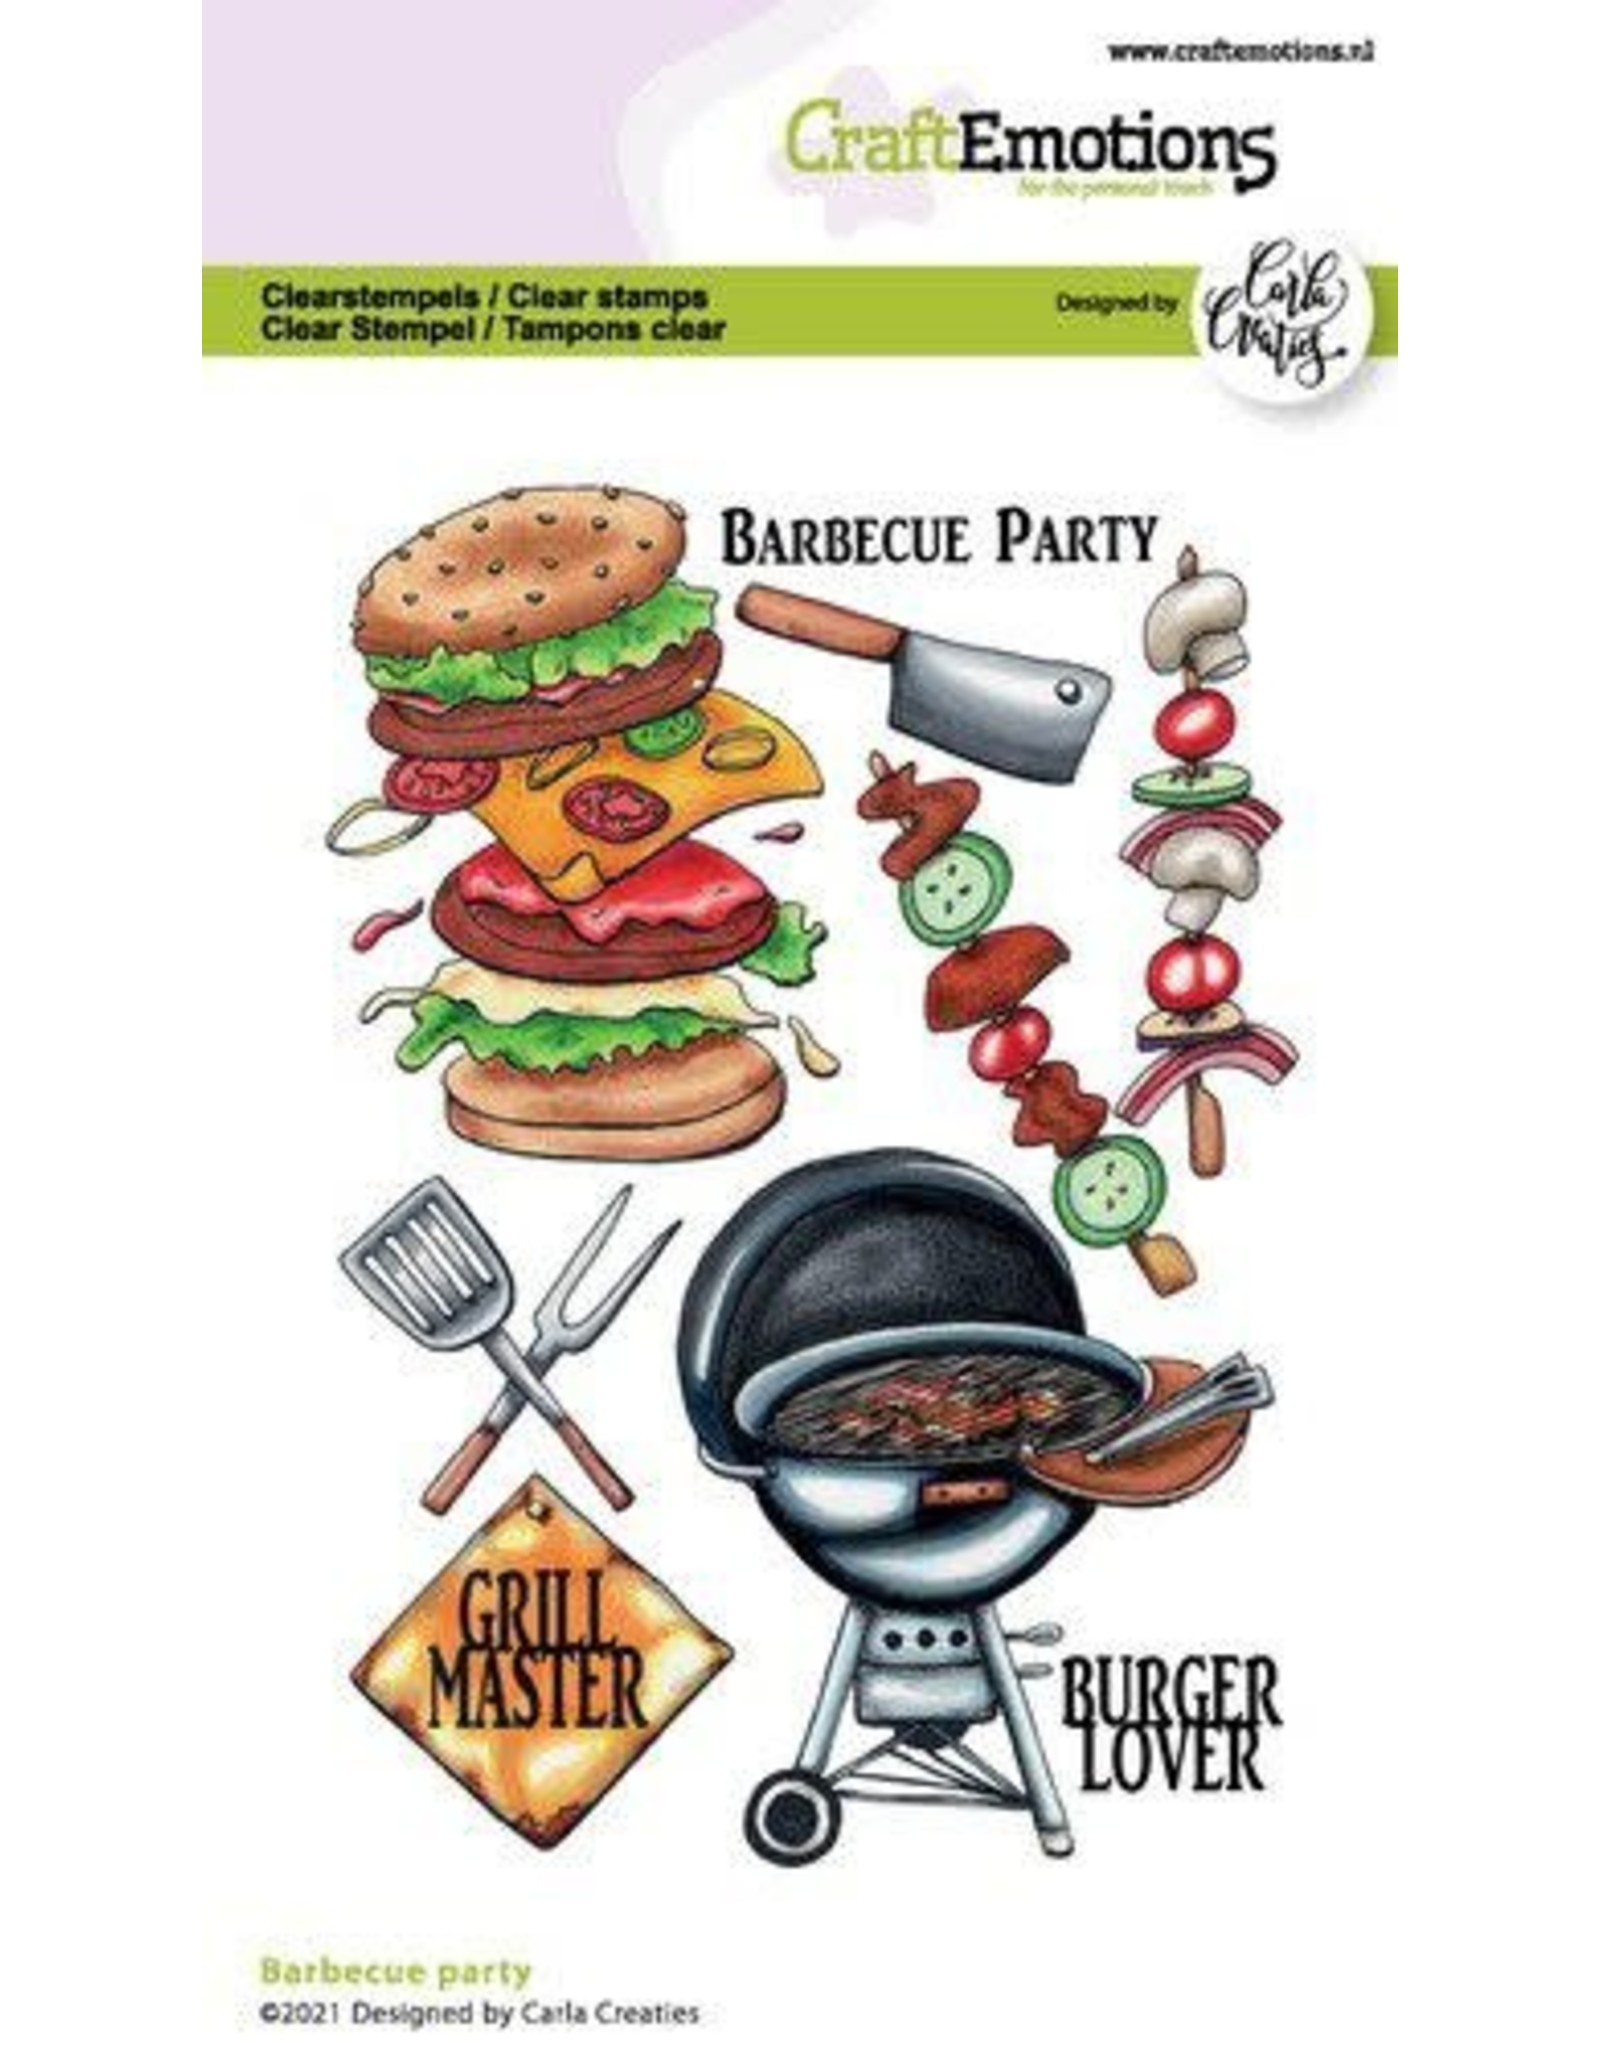 Craft Emotions CraftEmotions clearstamps A6 - Barbecue party Carla Creaties